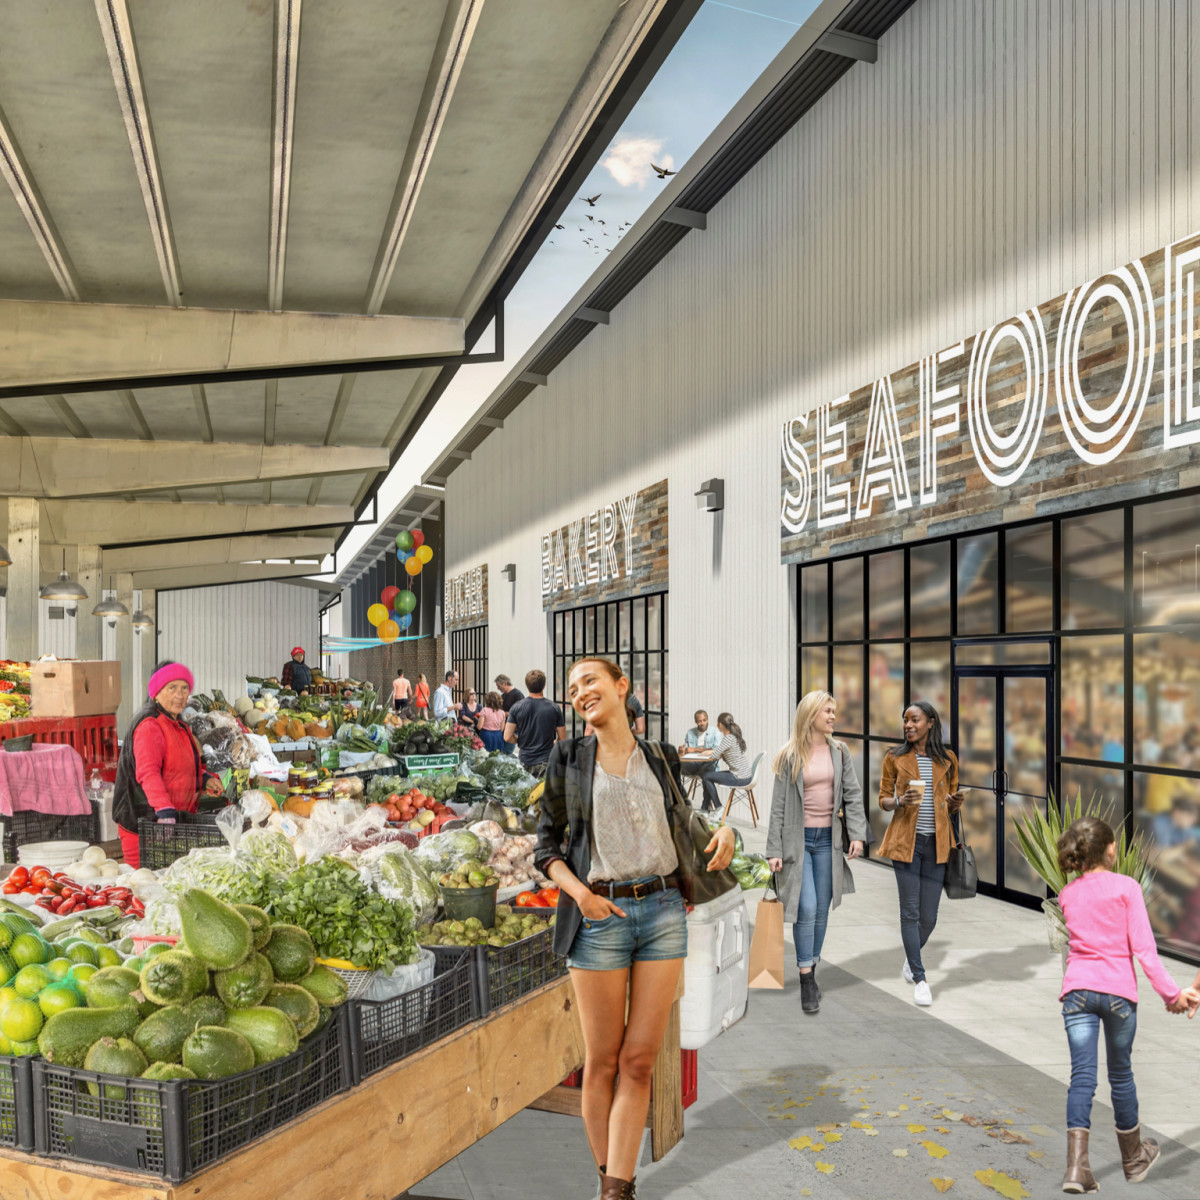 Houston Farmers Market bakery rendering